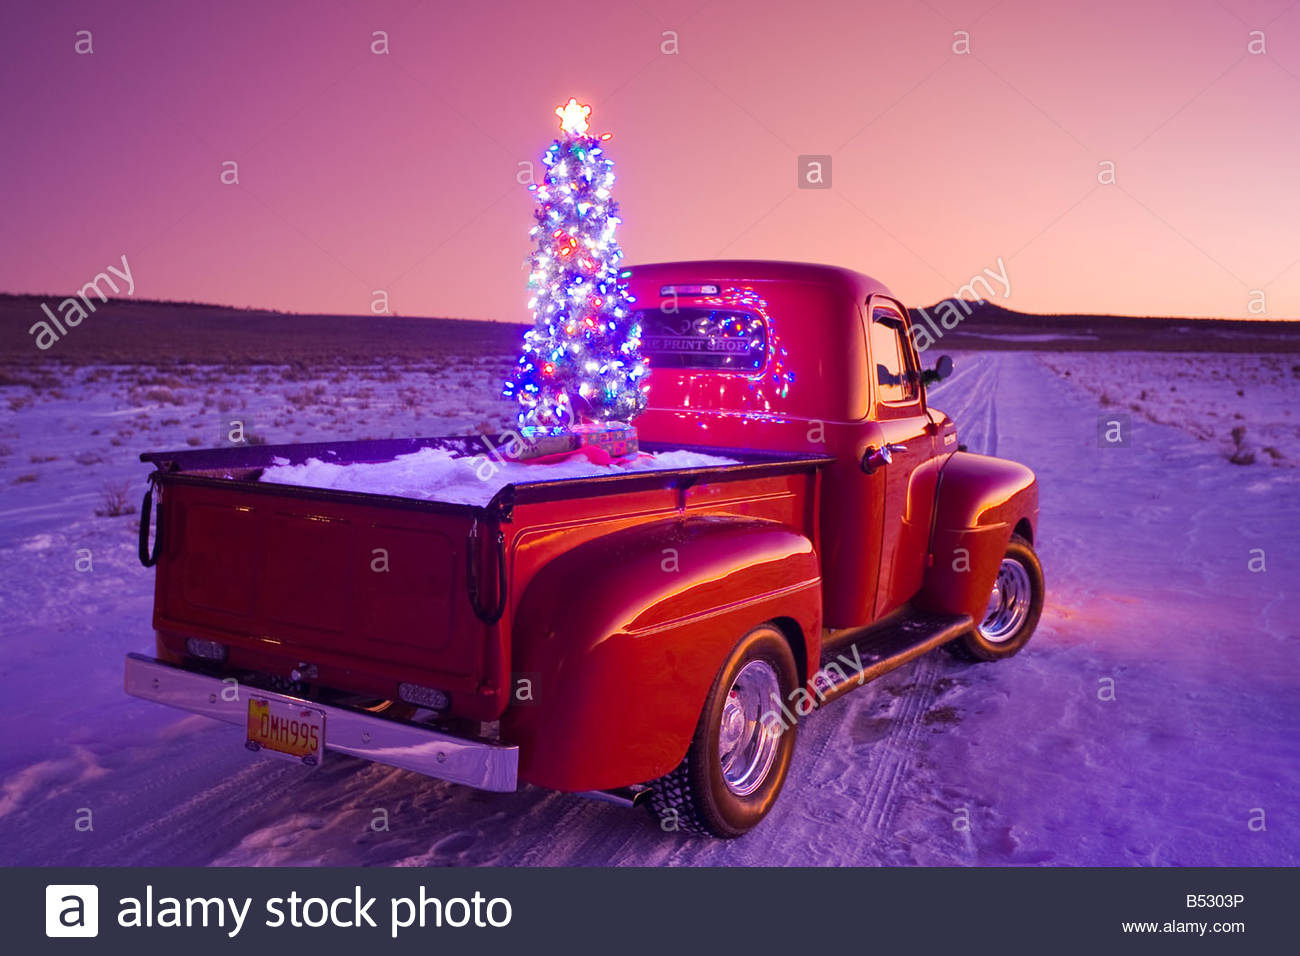 Free Christmas Tree Pick Up Part - 38: Stock Photo - Vintage Ford Pick-up Truck With Christmas Wreath And Tree In  Back Parked In Rural Area At Sunset, Rio Grande Valley, New Mexico